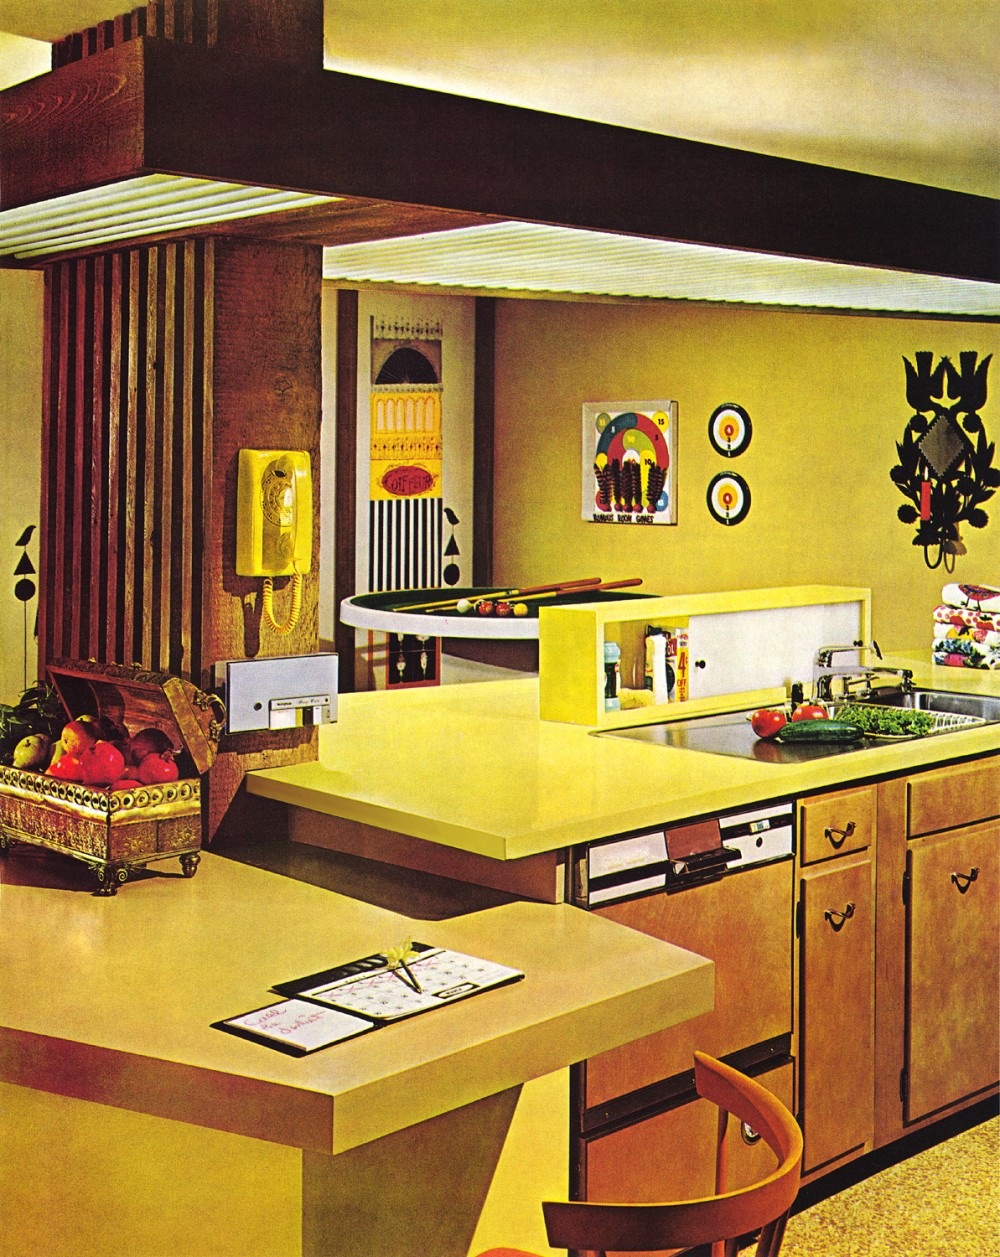 1960s interior design trends the image for Home decor 1970s